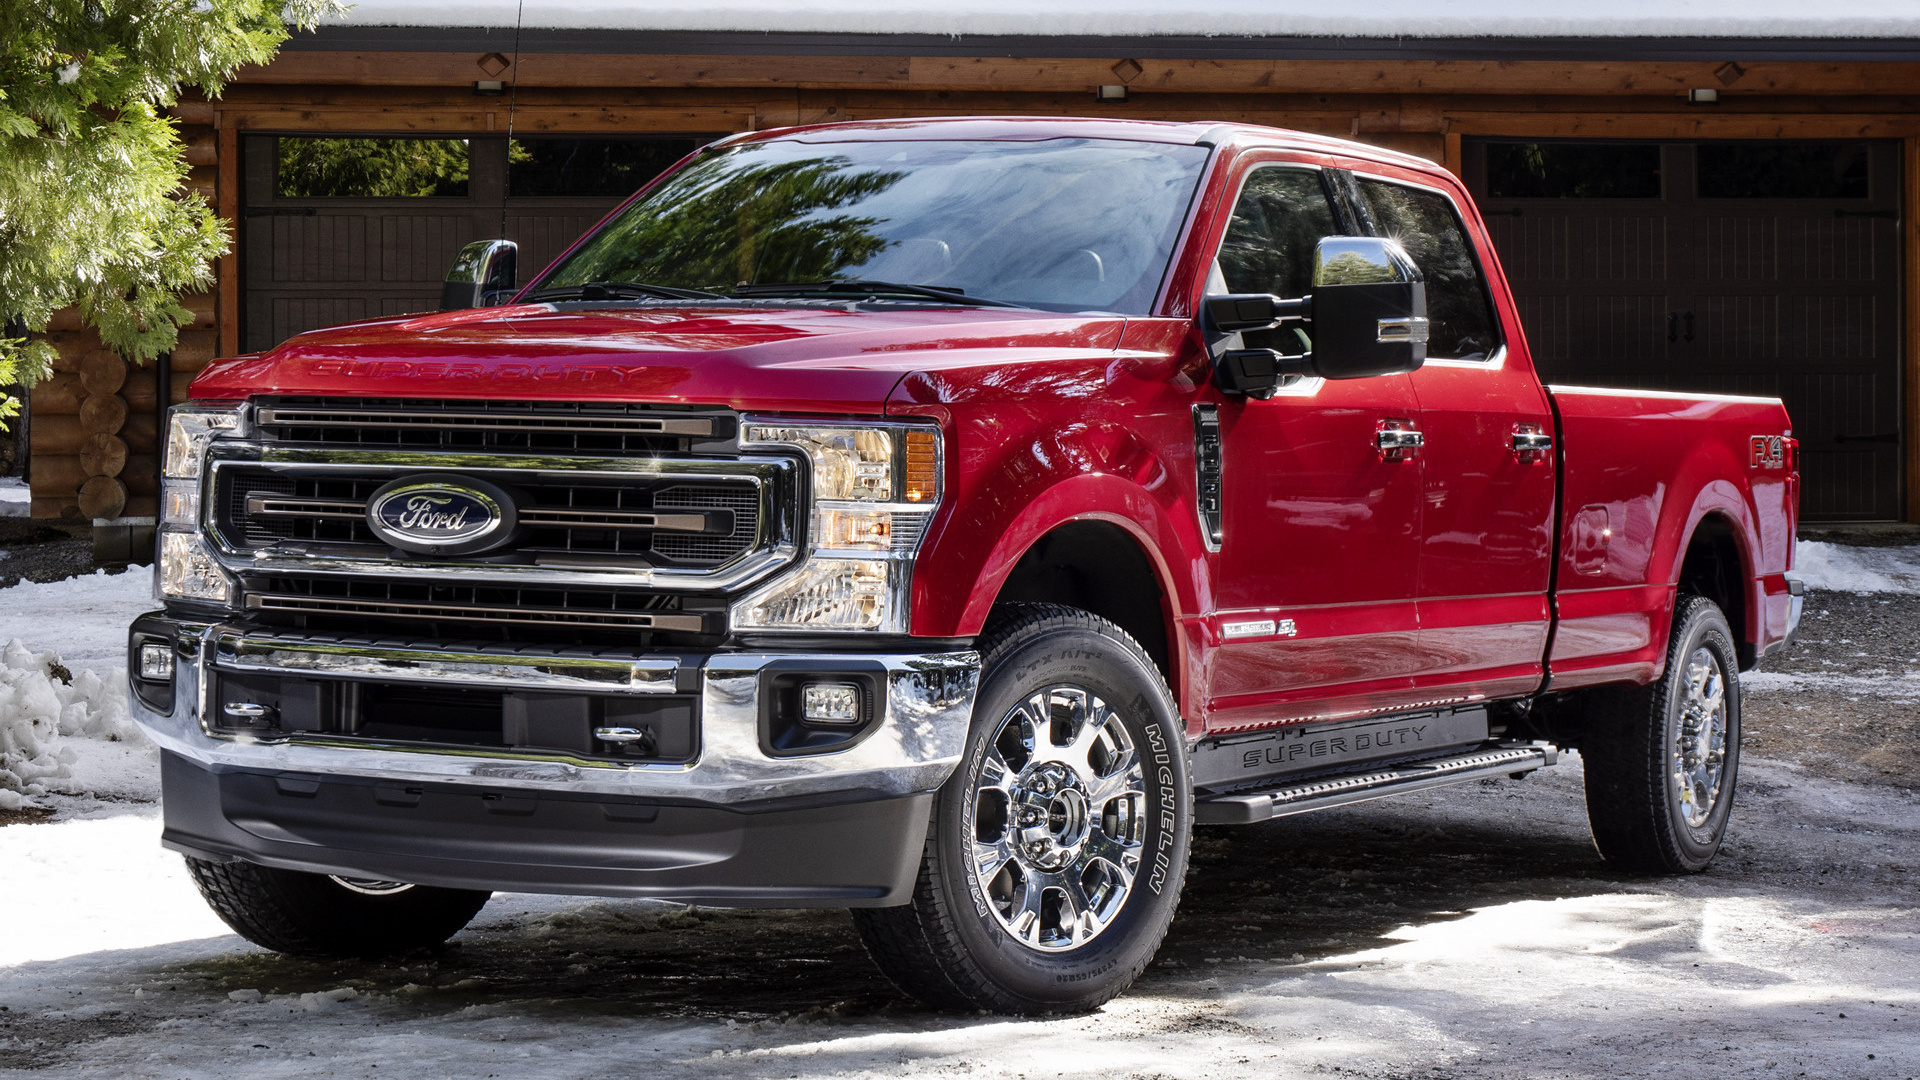 King Ranch Ford >> 2020 Ford F-250 Super Duty King Ranch Crew Cab FX4 Package ...